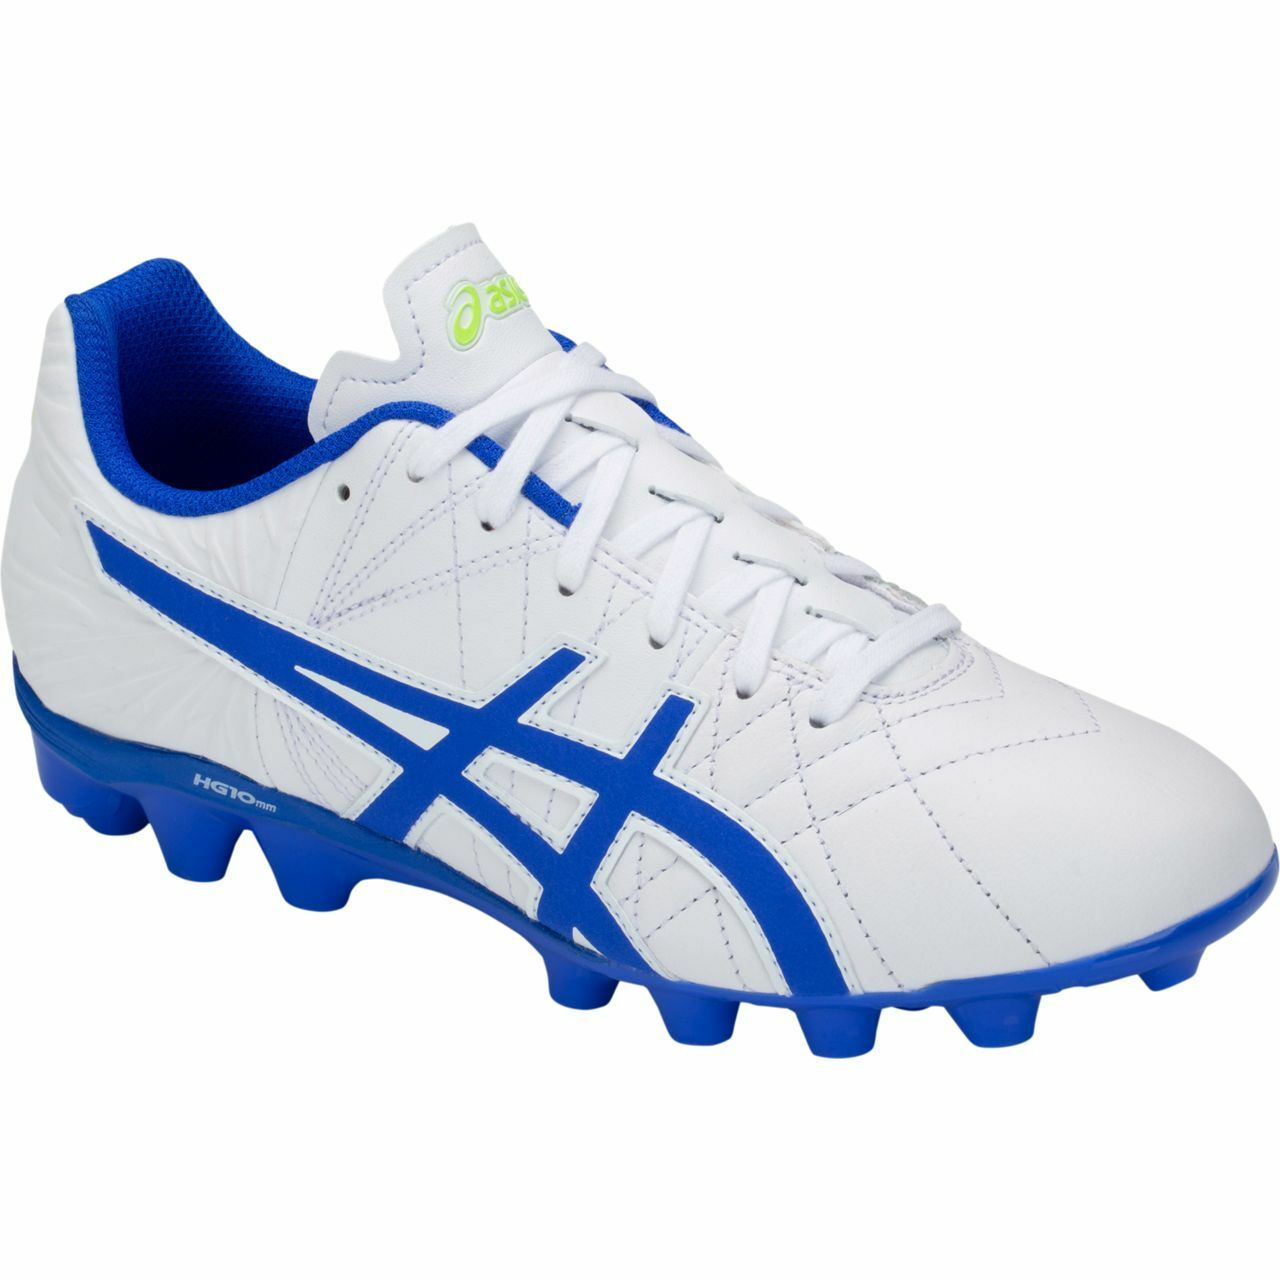 BARGAIN    Asics Lethal Tigreor IT GS Kids Football stivali 100